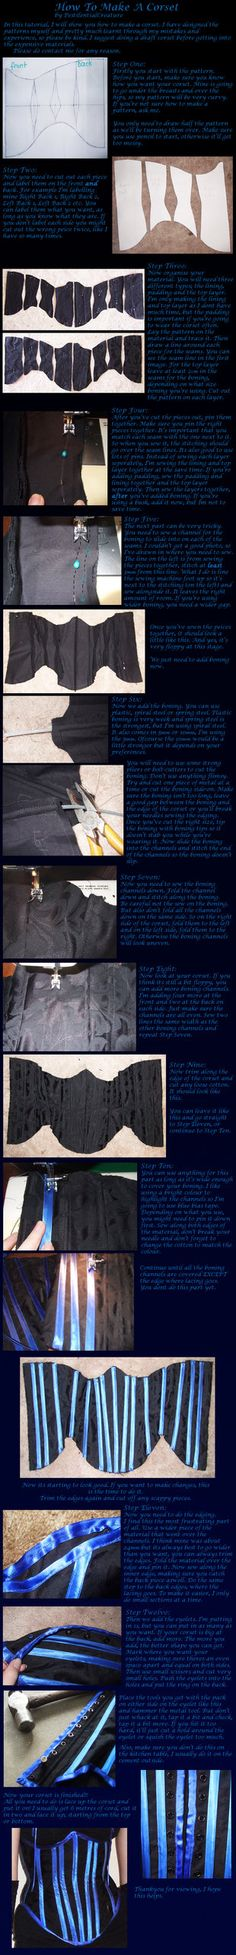 Corset Tutorial. by ~PestilentialCreature on deviantART